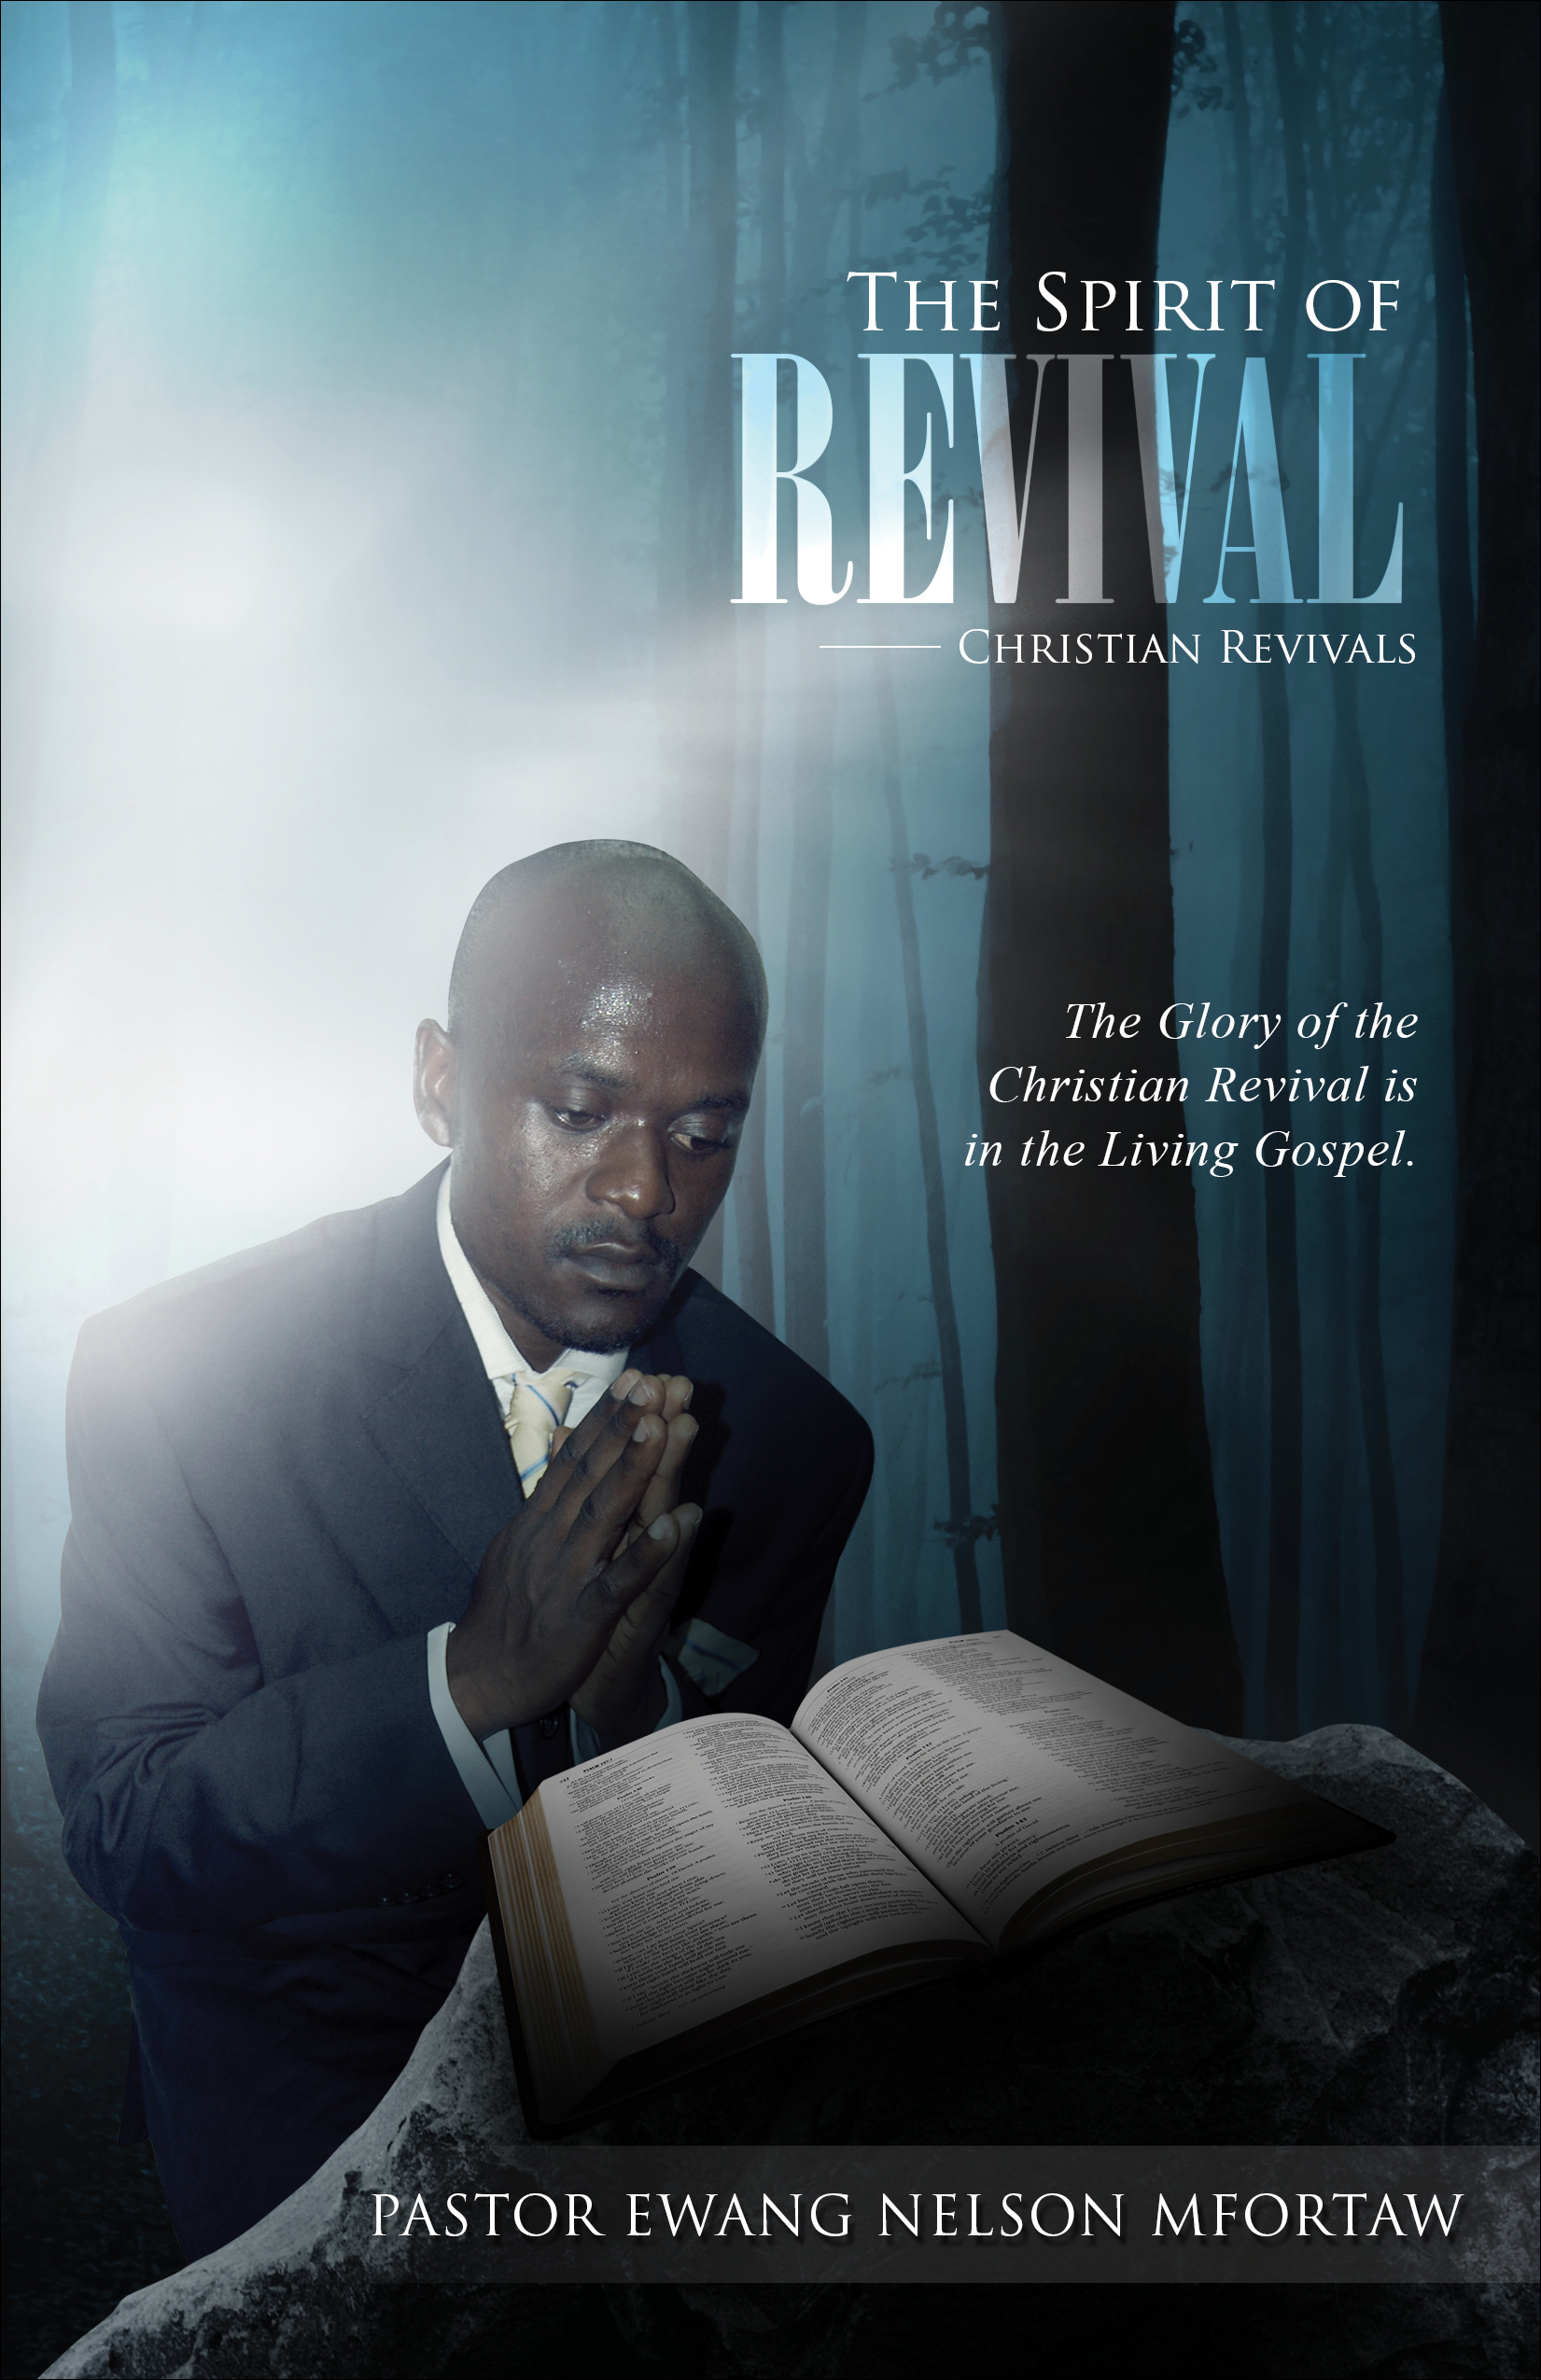 Christian Book Review Listings, The Spirit Of Revival